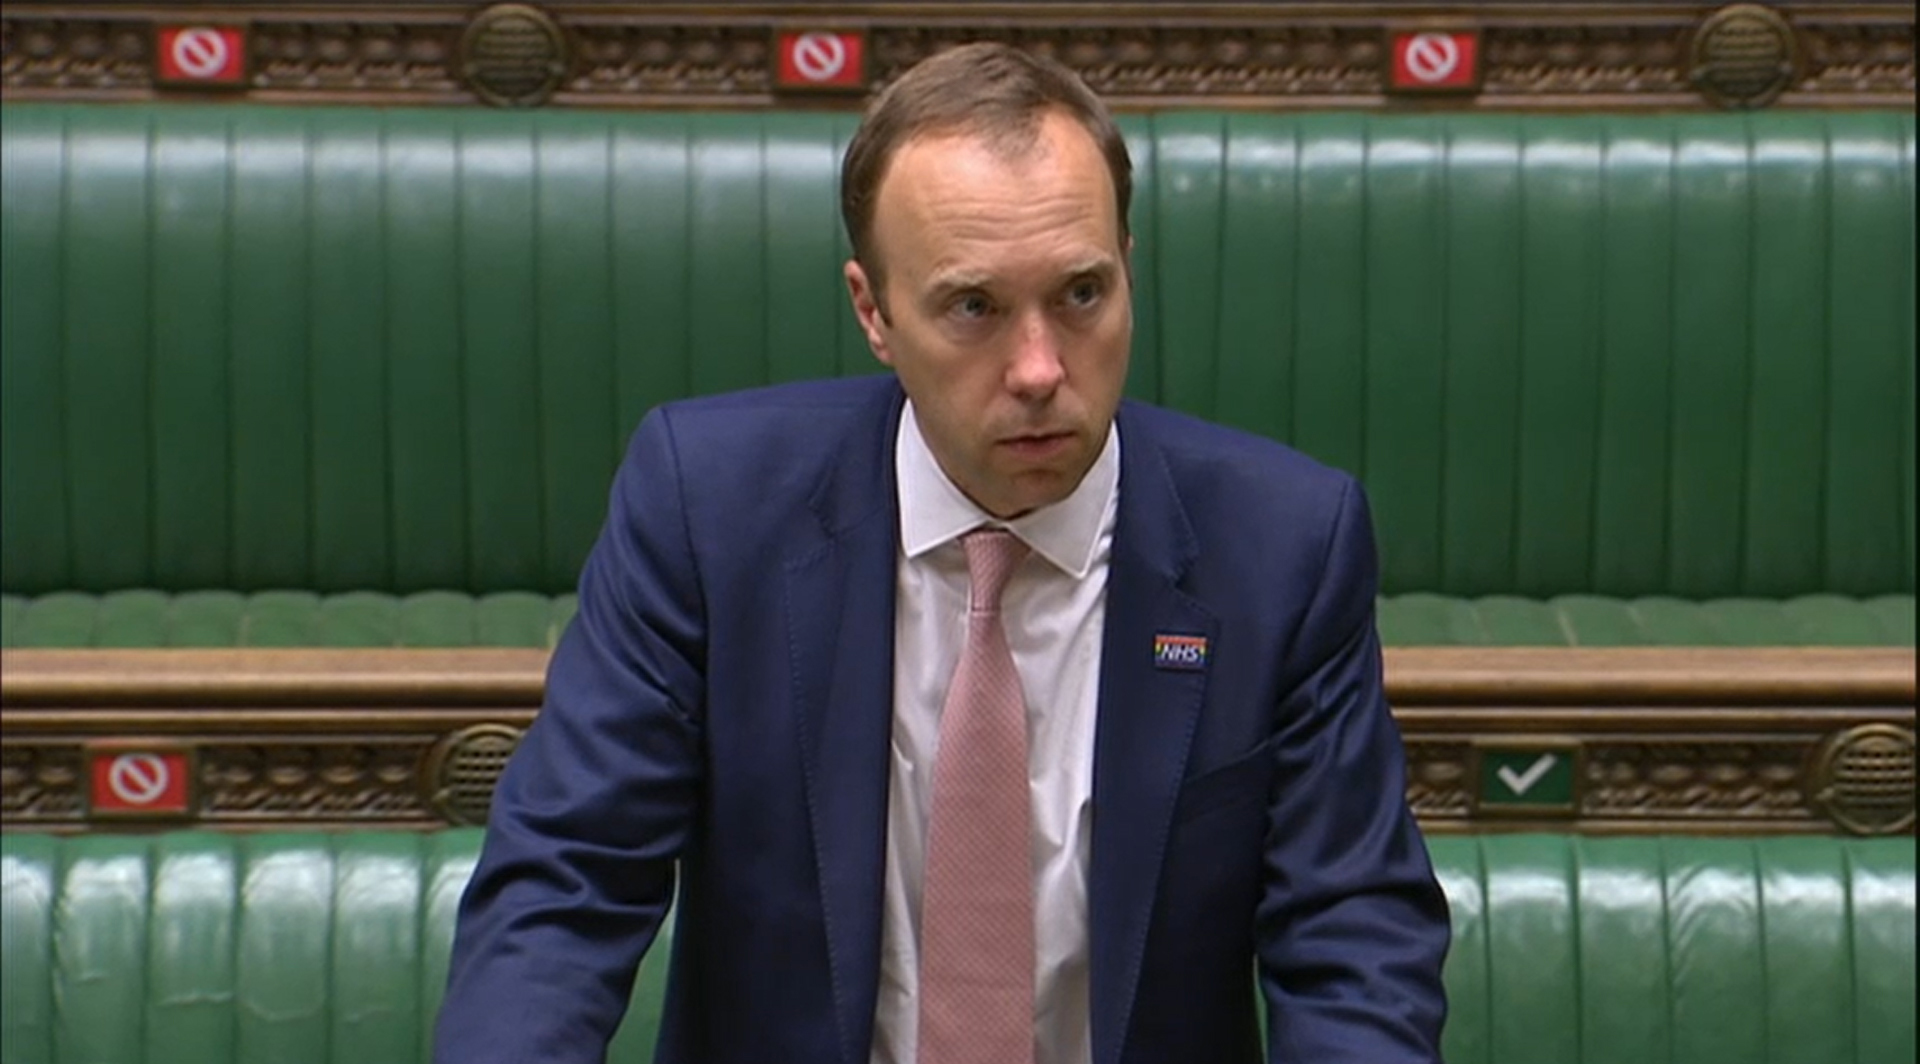 British Health Secretary Matt Hancock makes a statement in London's House of Commons on September 17.